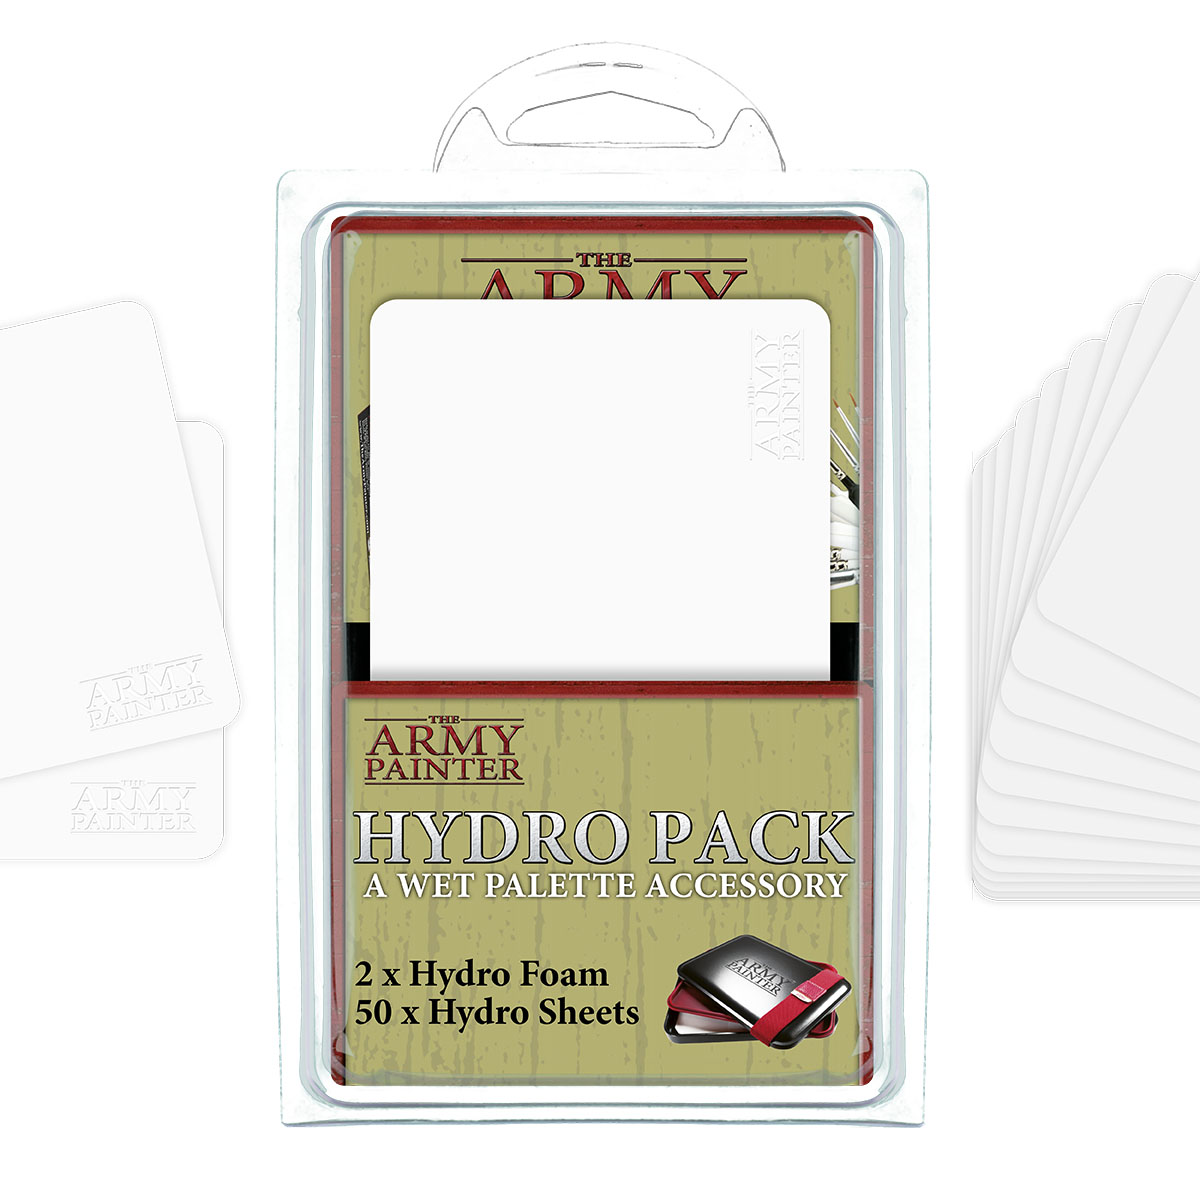 Army Painter - Hydro Pack for Wet Palette